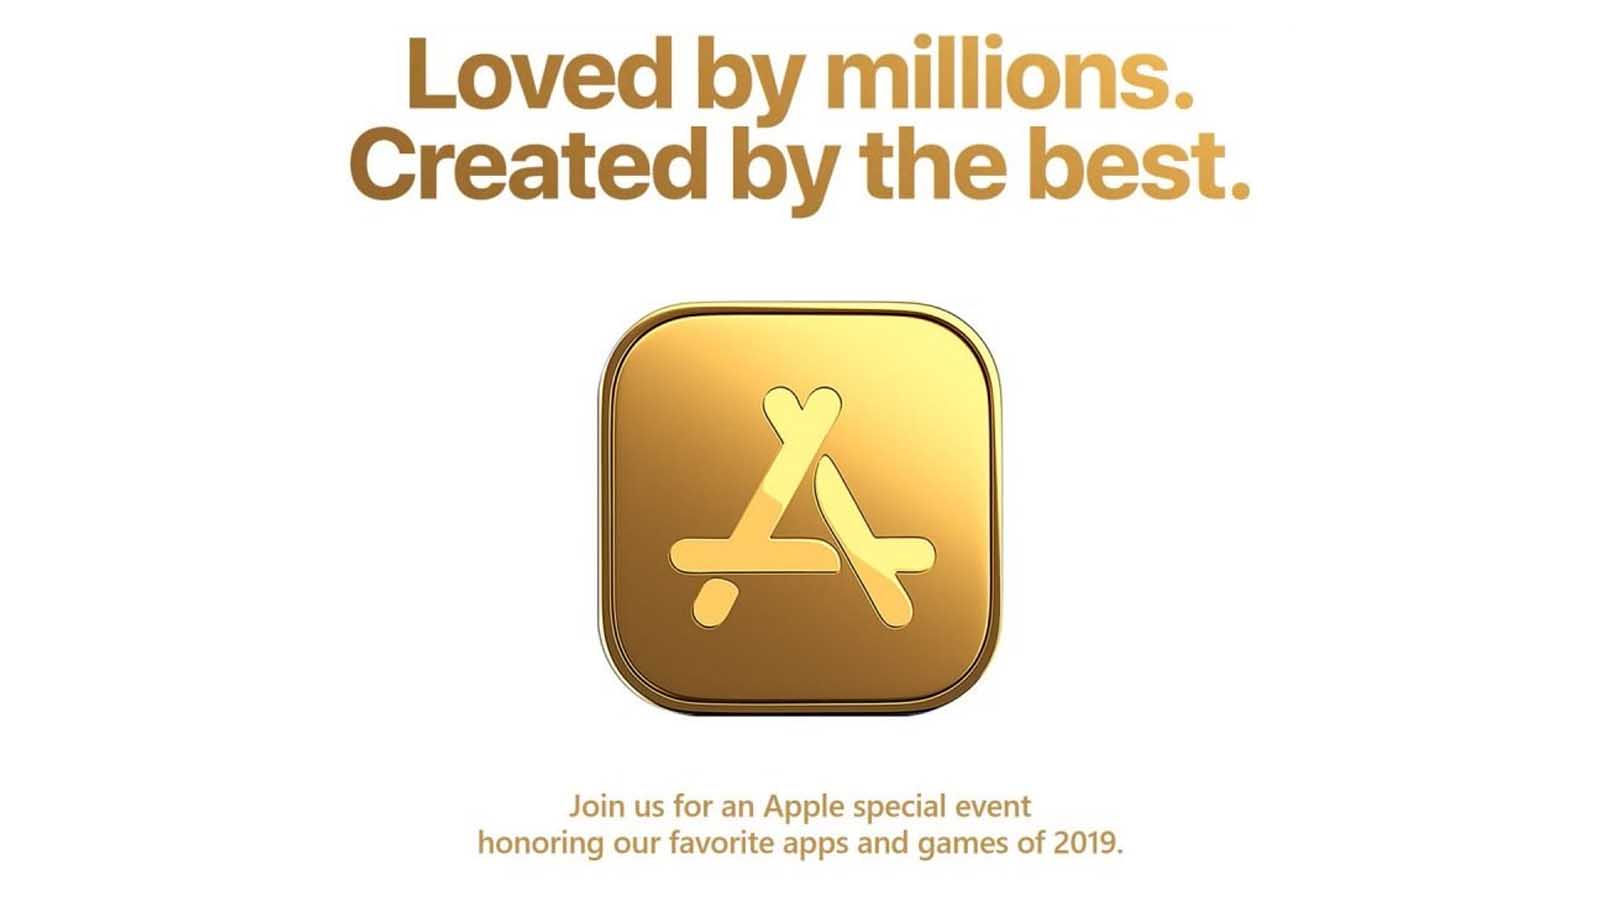 apple event in gold